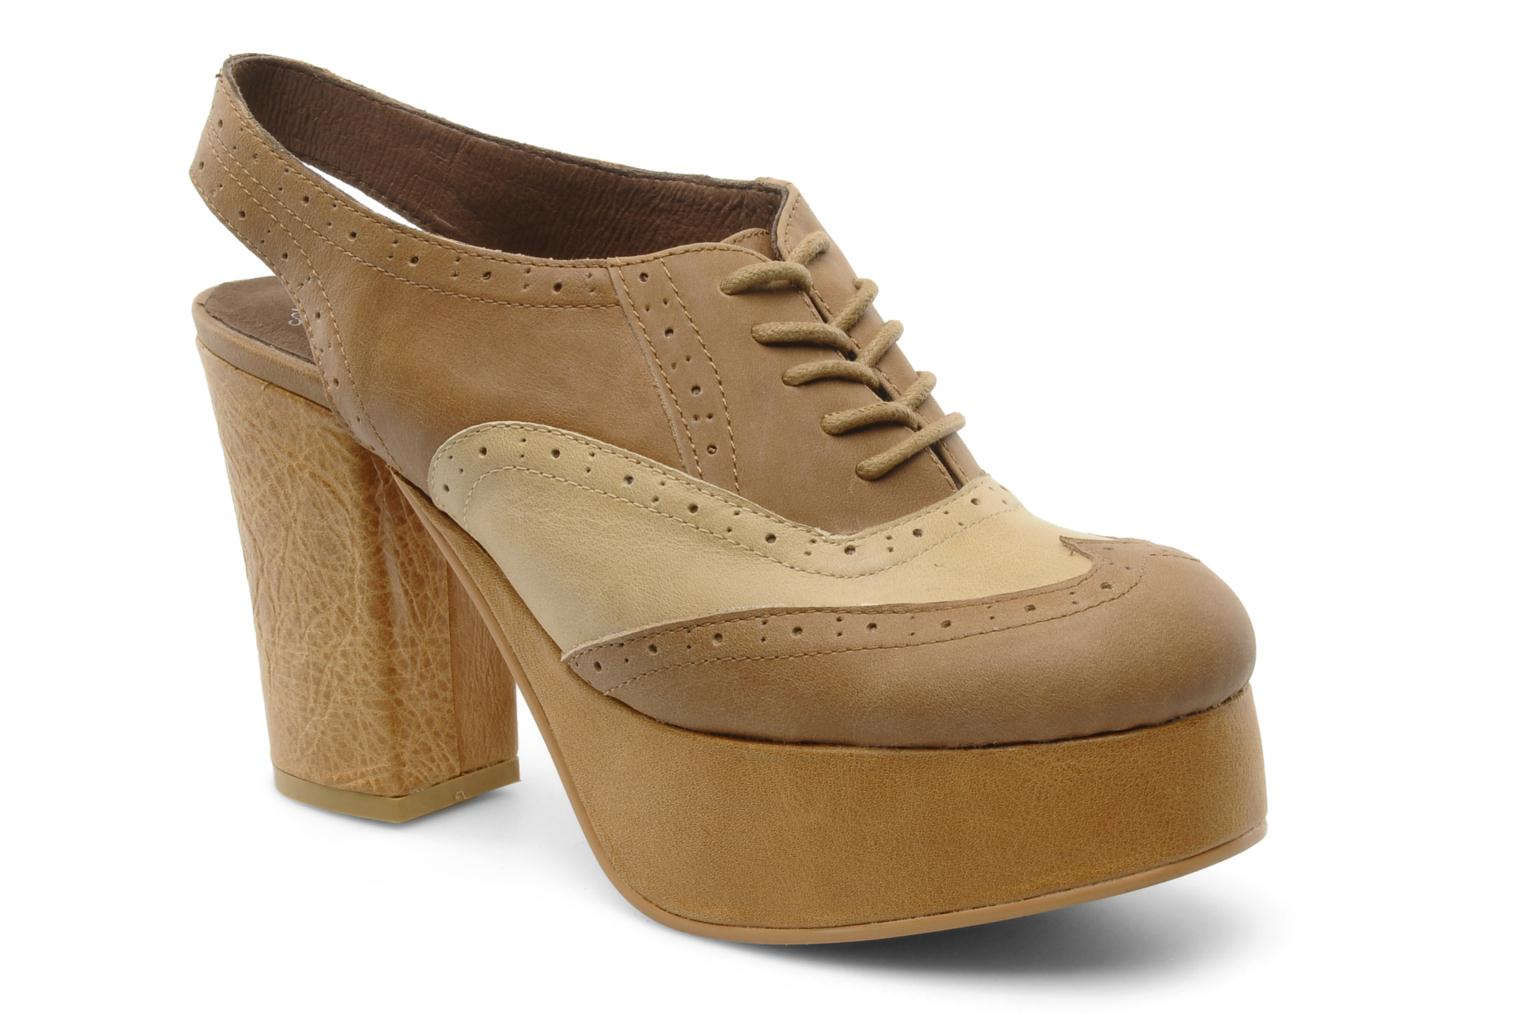 Jeffrey Campbell Ditto Beige dtFxLI539O